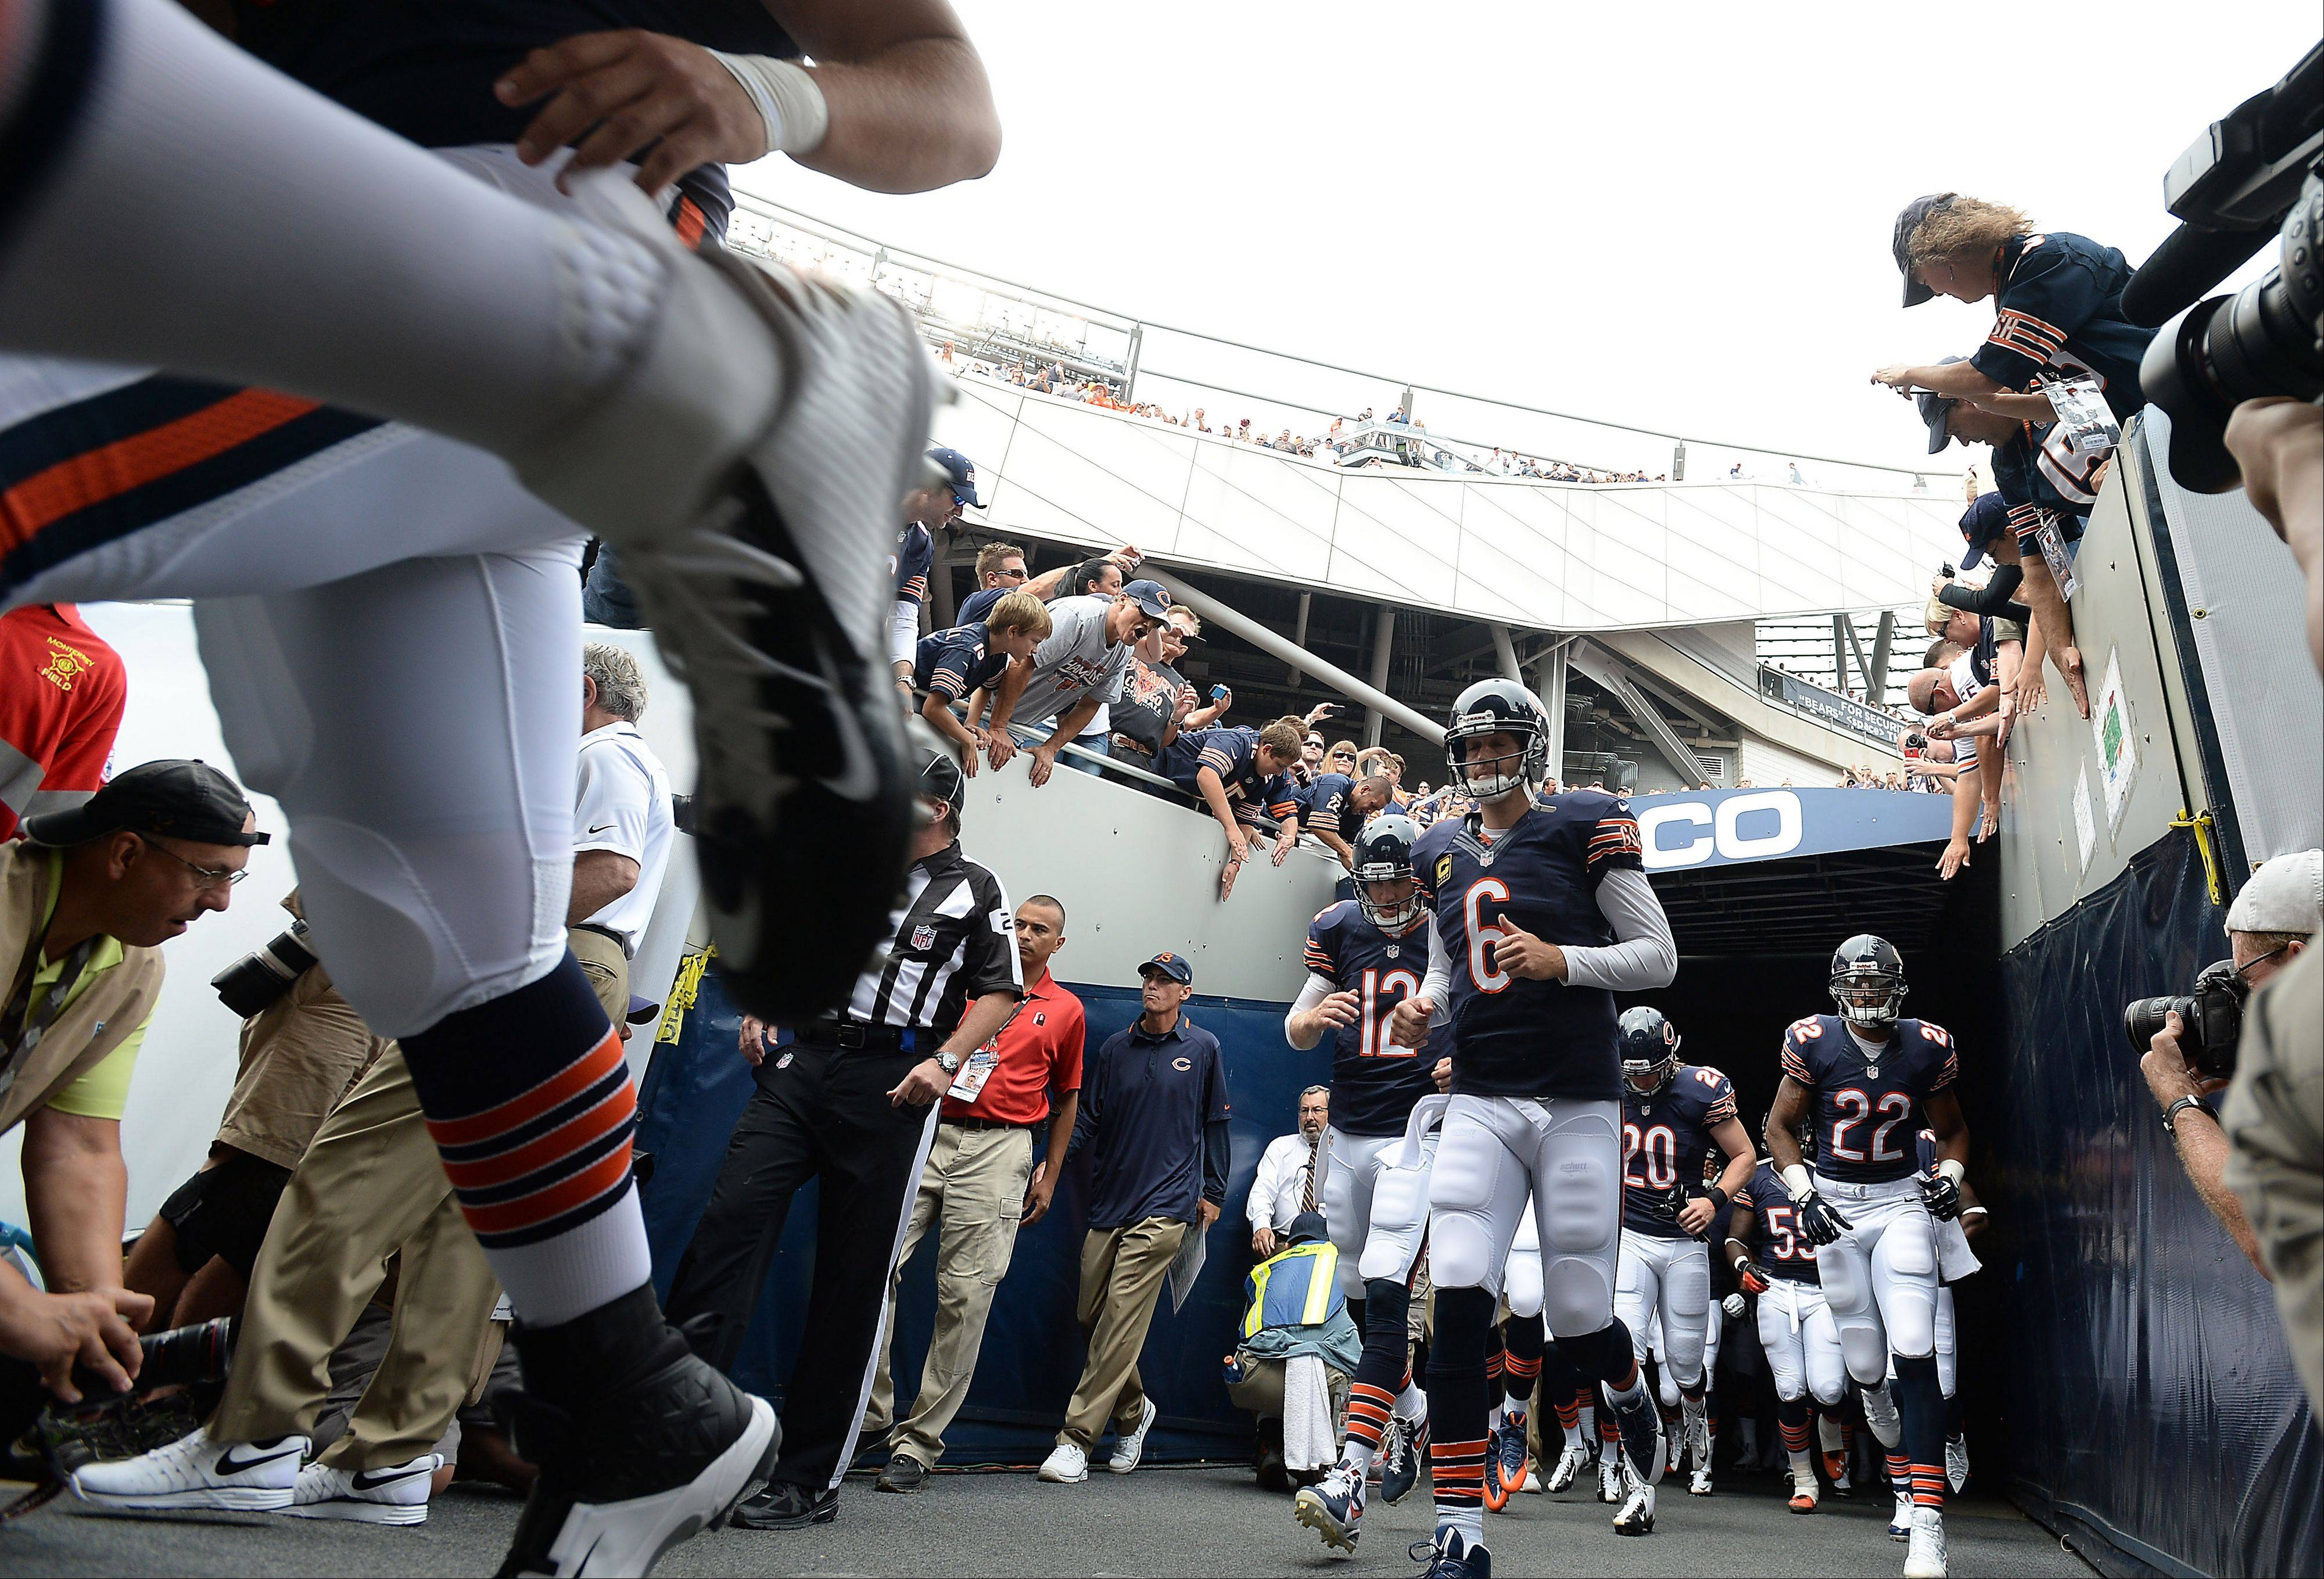 Chicago Bears quarterback Jay Cutler runs out onto the field in the season opener against the Cincinnati Bengals at Soldier Field in Chicago on Sunday.